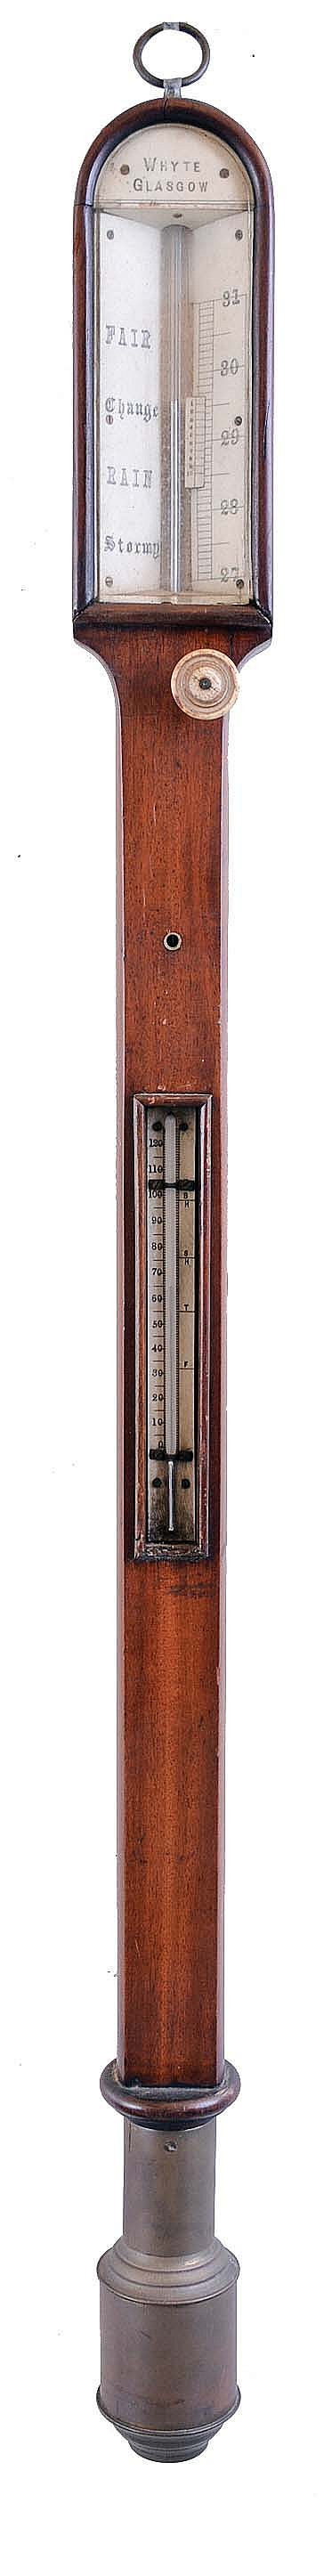 Whyte, Glasgow, Scotland gimballed marine mercury stick barometer with thermometer inset in midle of mahogany case